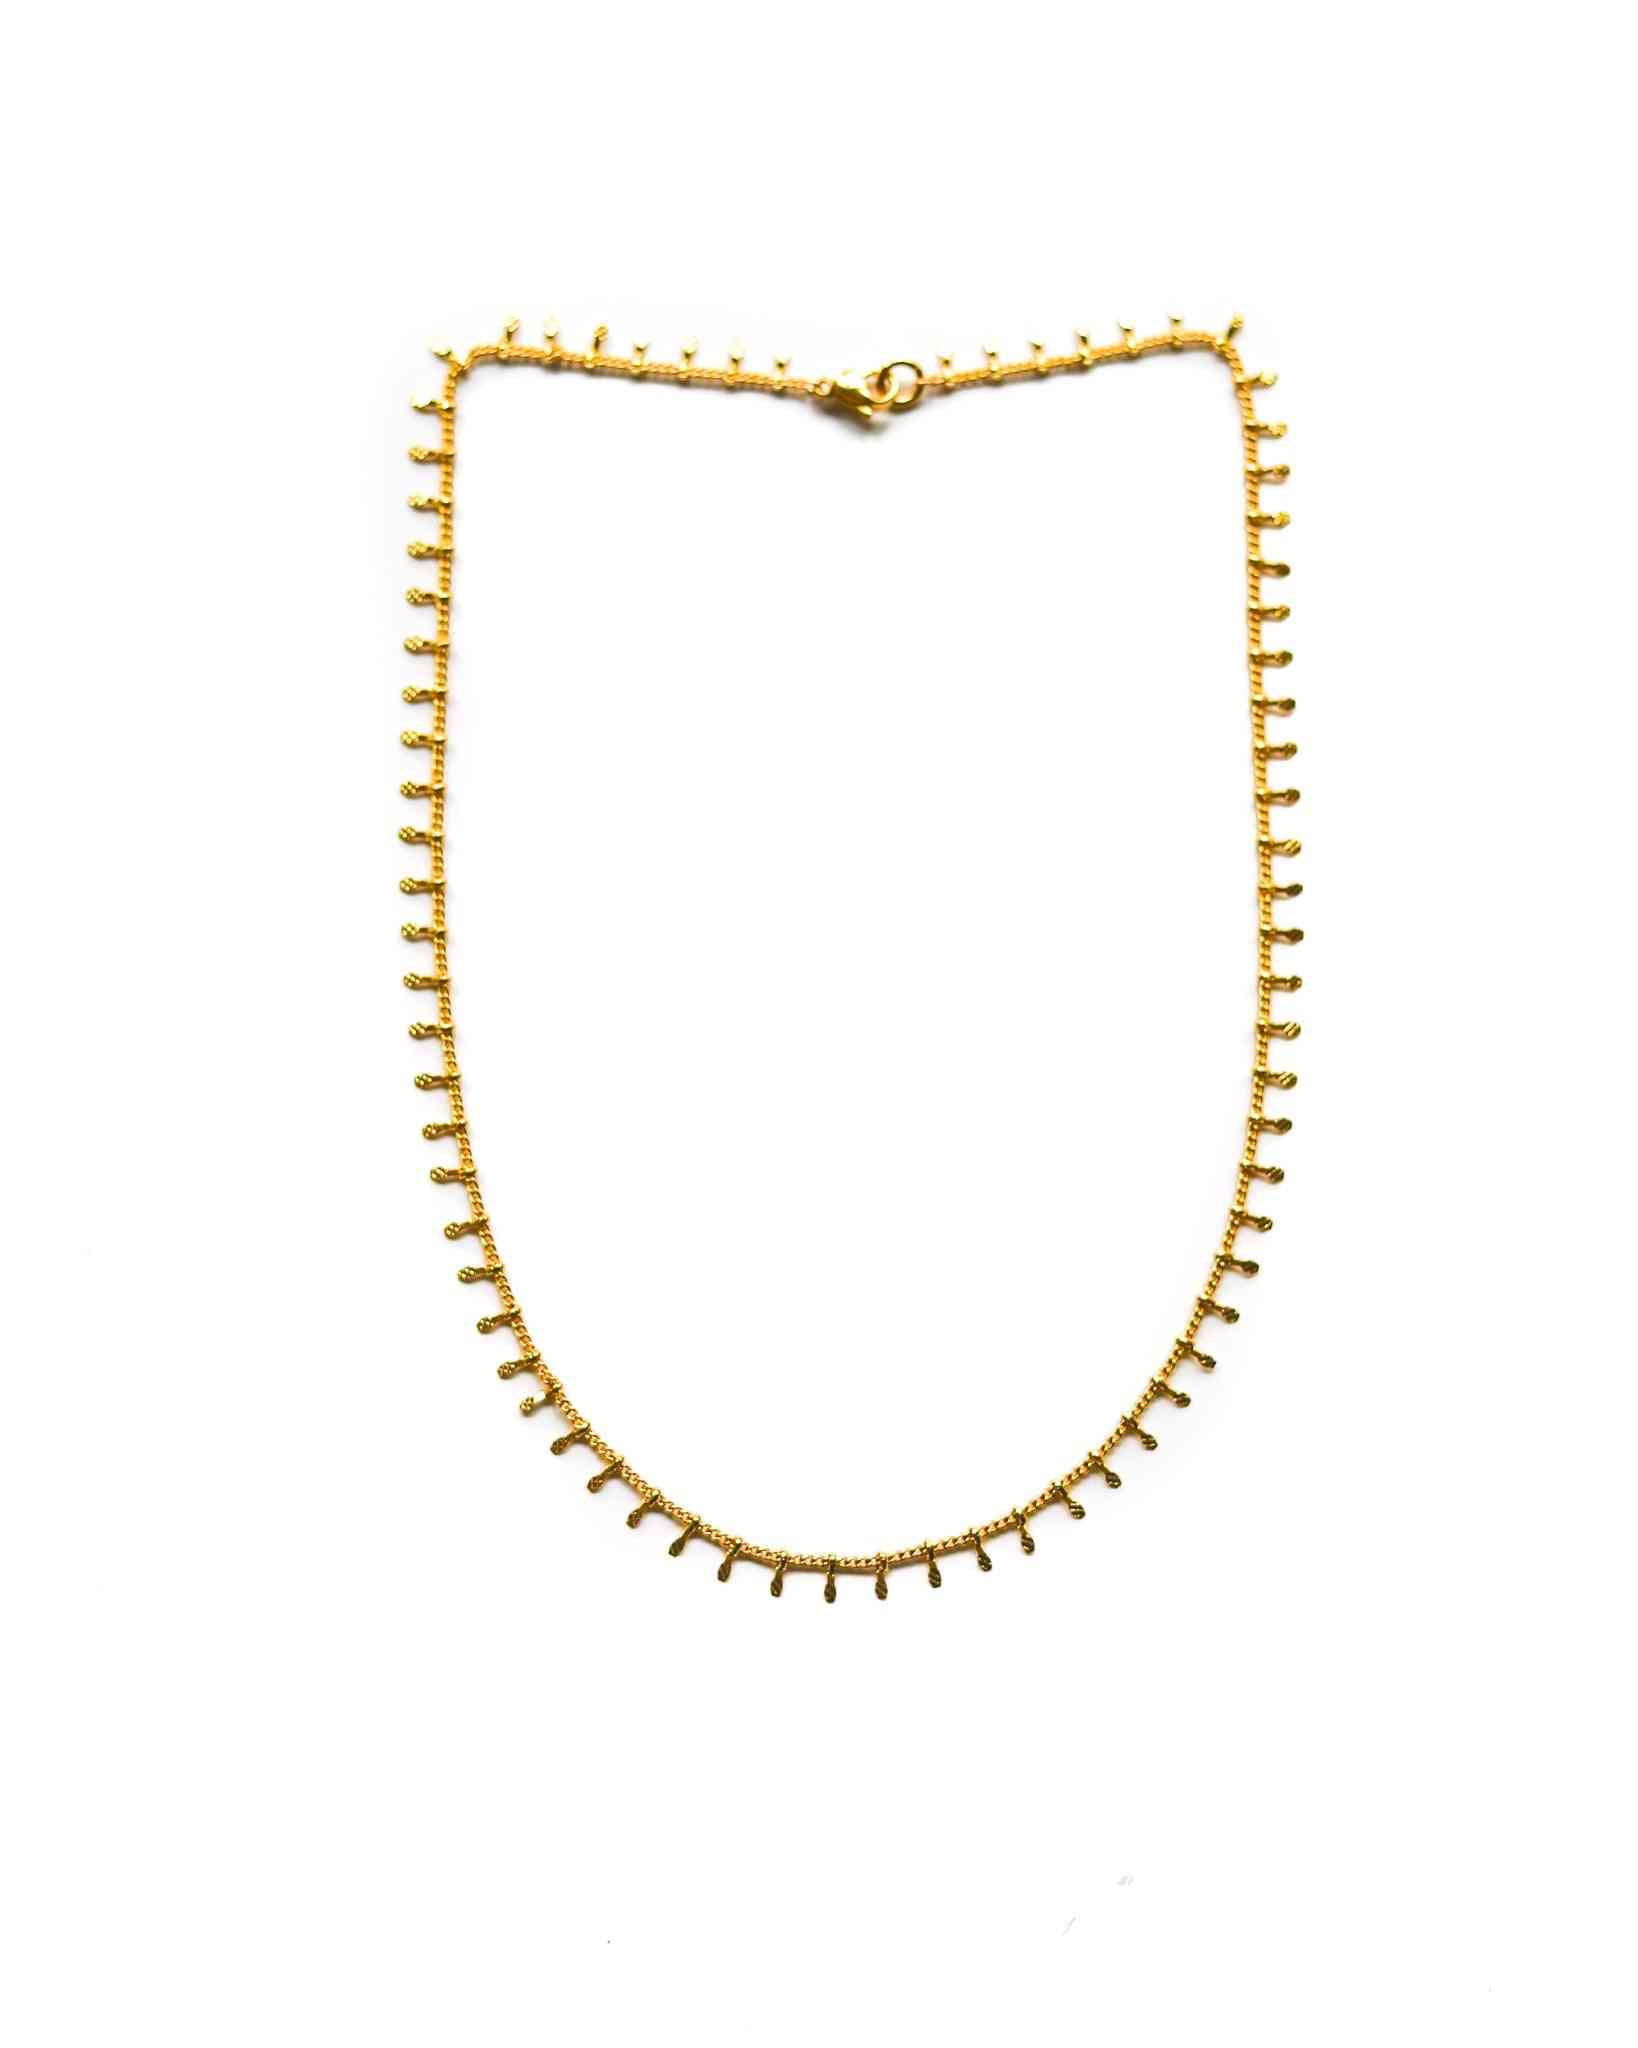 Hammered Lace 24k Gf Chain